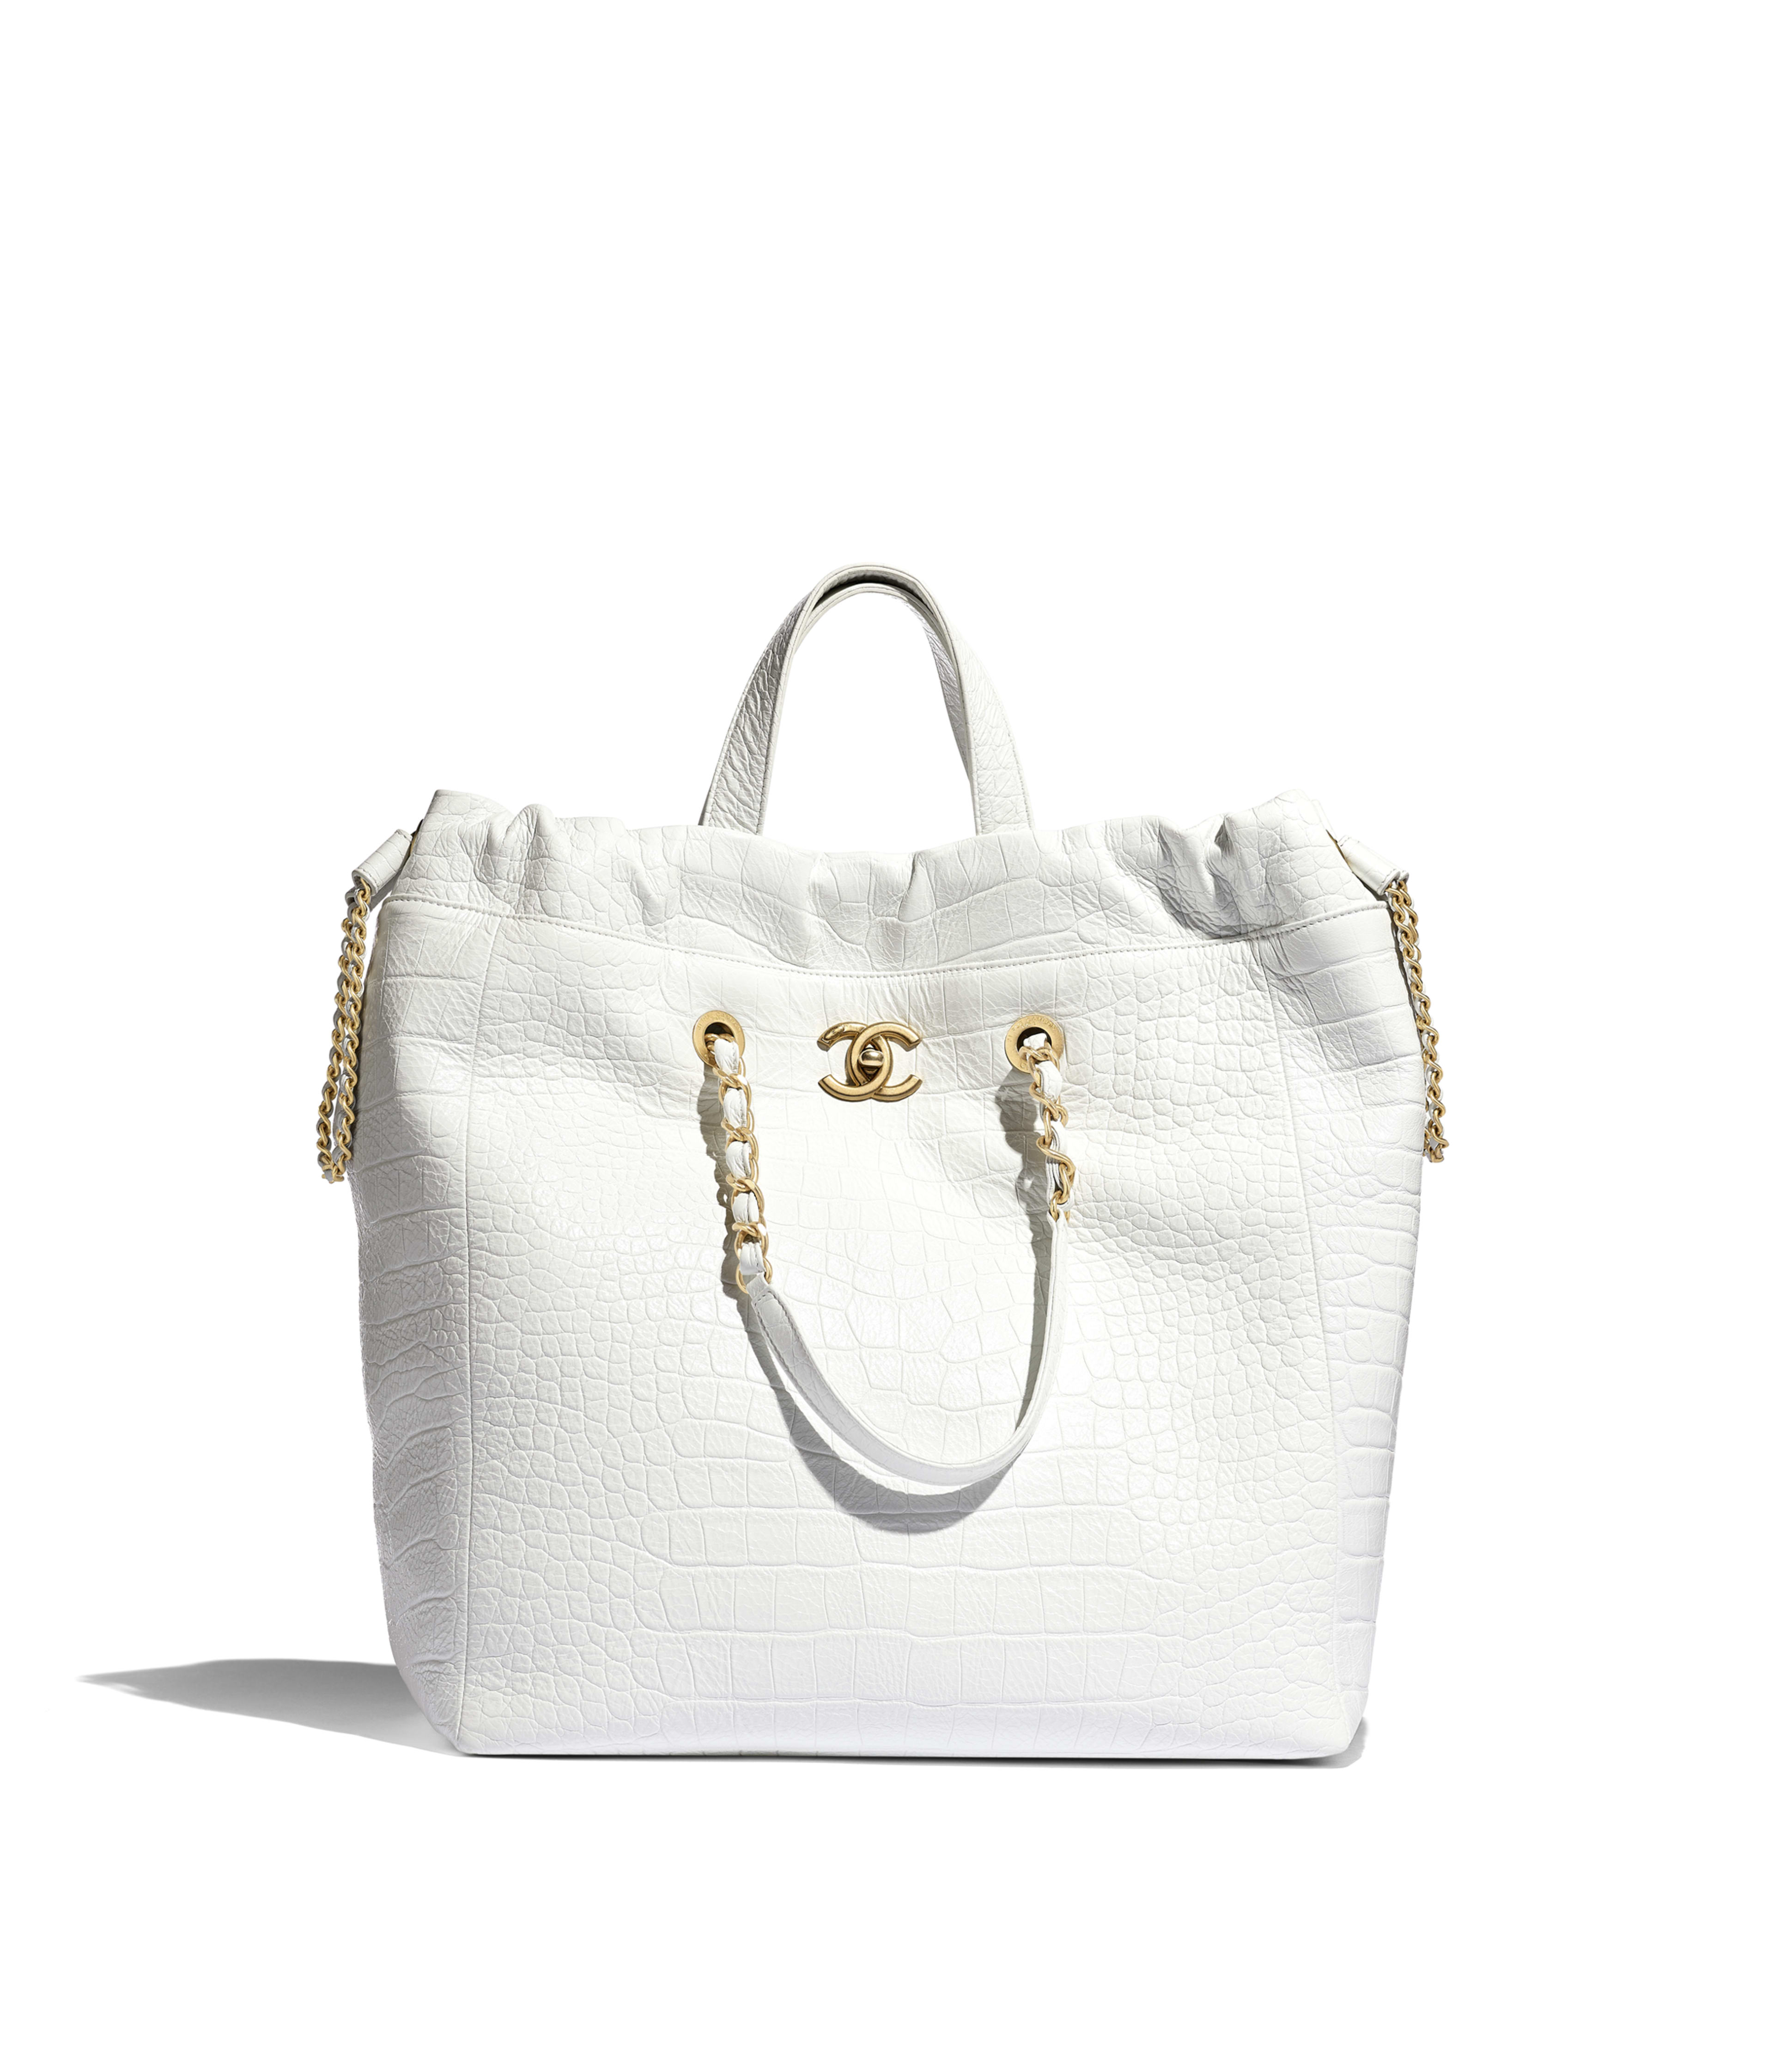 a4e2f96a3 Large Shopping Bag Crocodile Embossed Printed Leather & Gold-Tone Metal,  White Ref. AS0801B0099710601